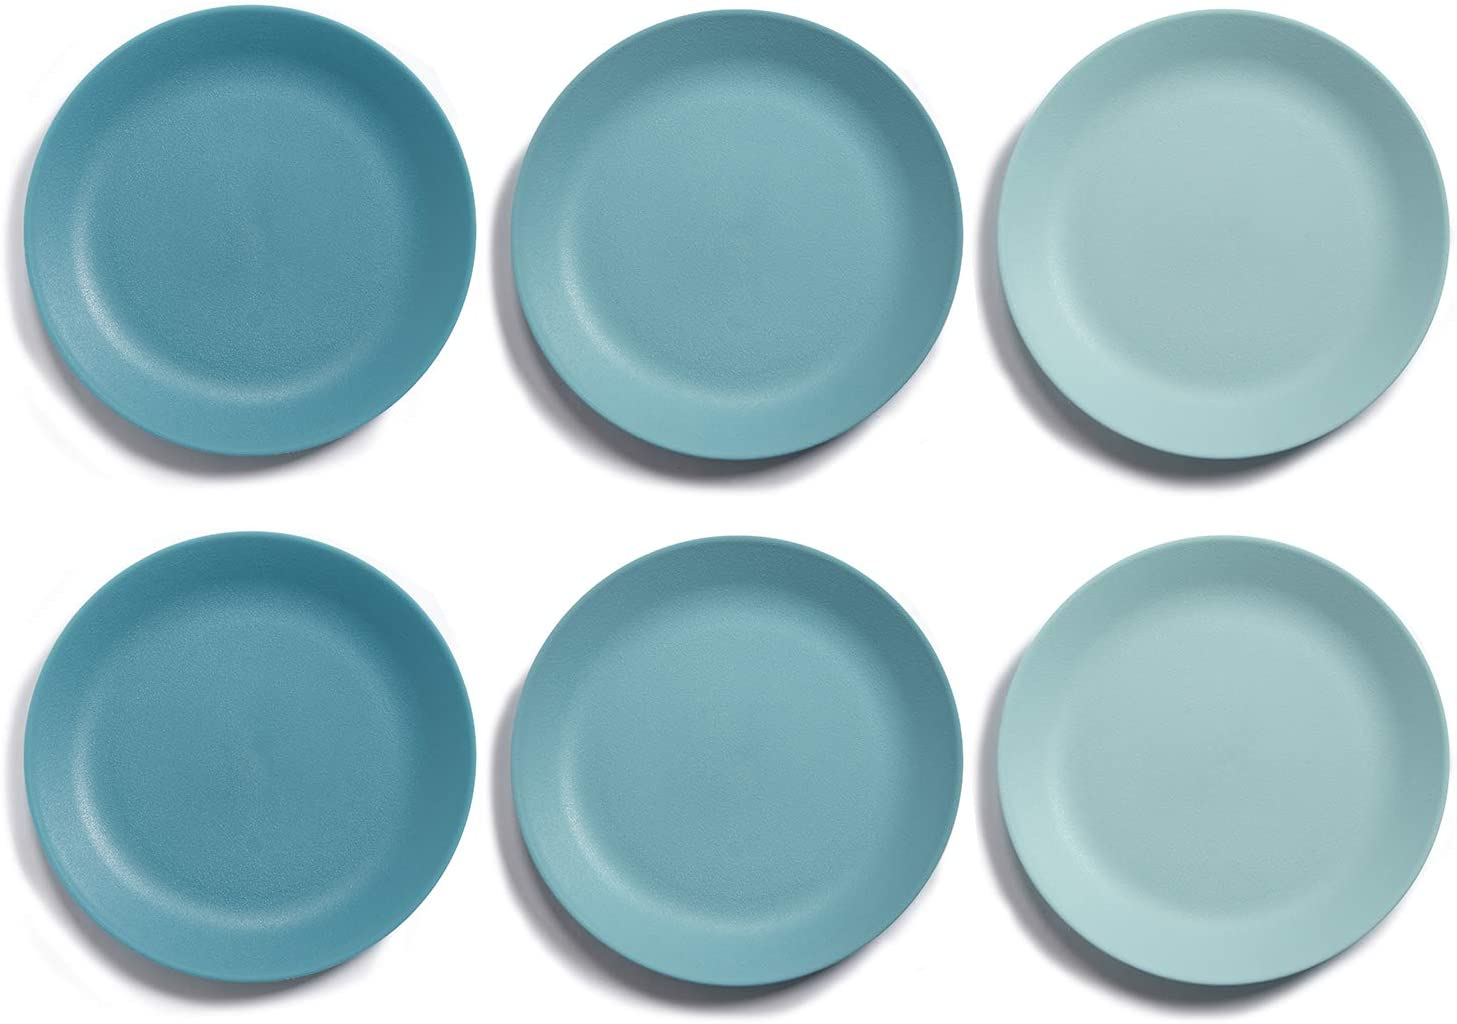 Everest Ultra-Durable Plastic 10-inch Dinner Plate set of 6 Coastal Blue Gradient